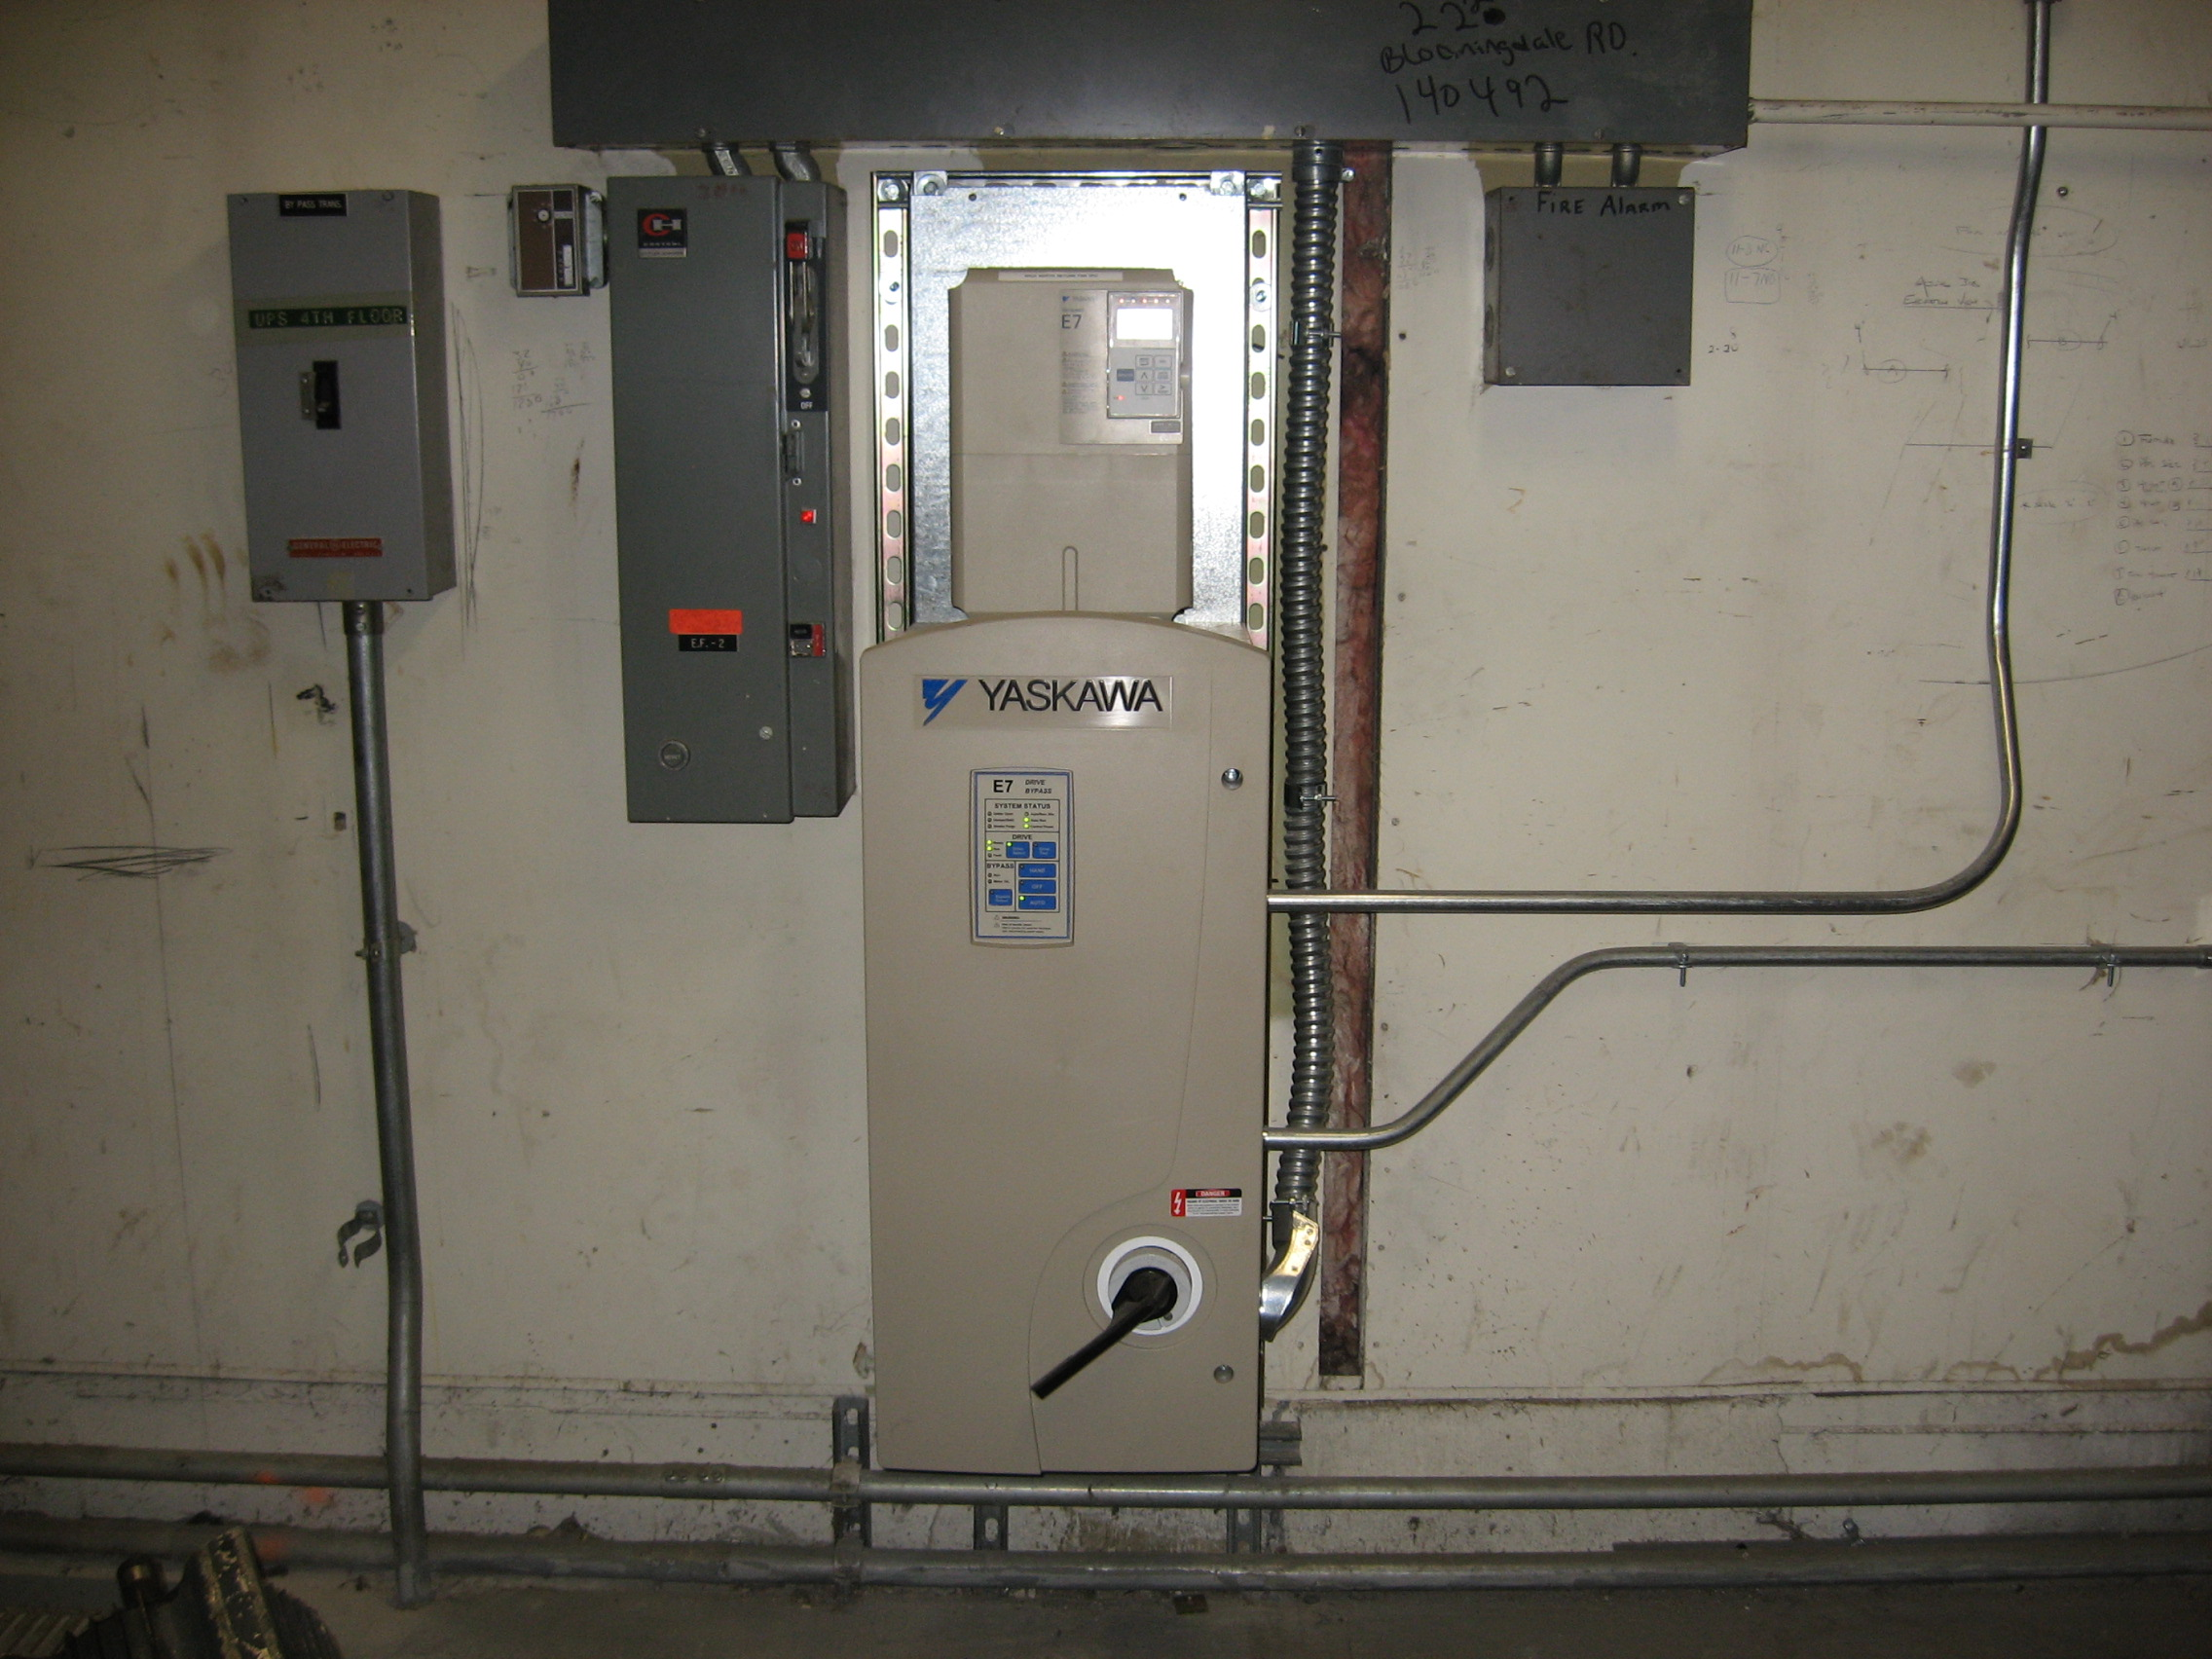 Yaskawa Electrical Panel